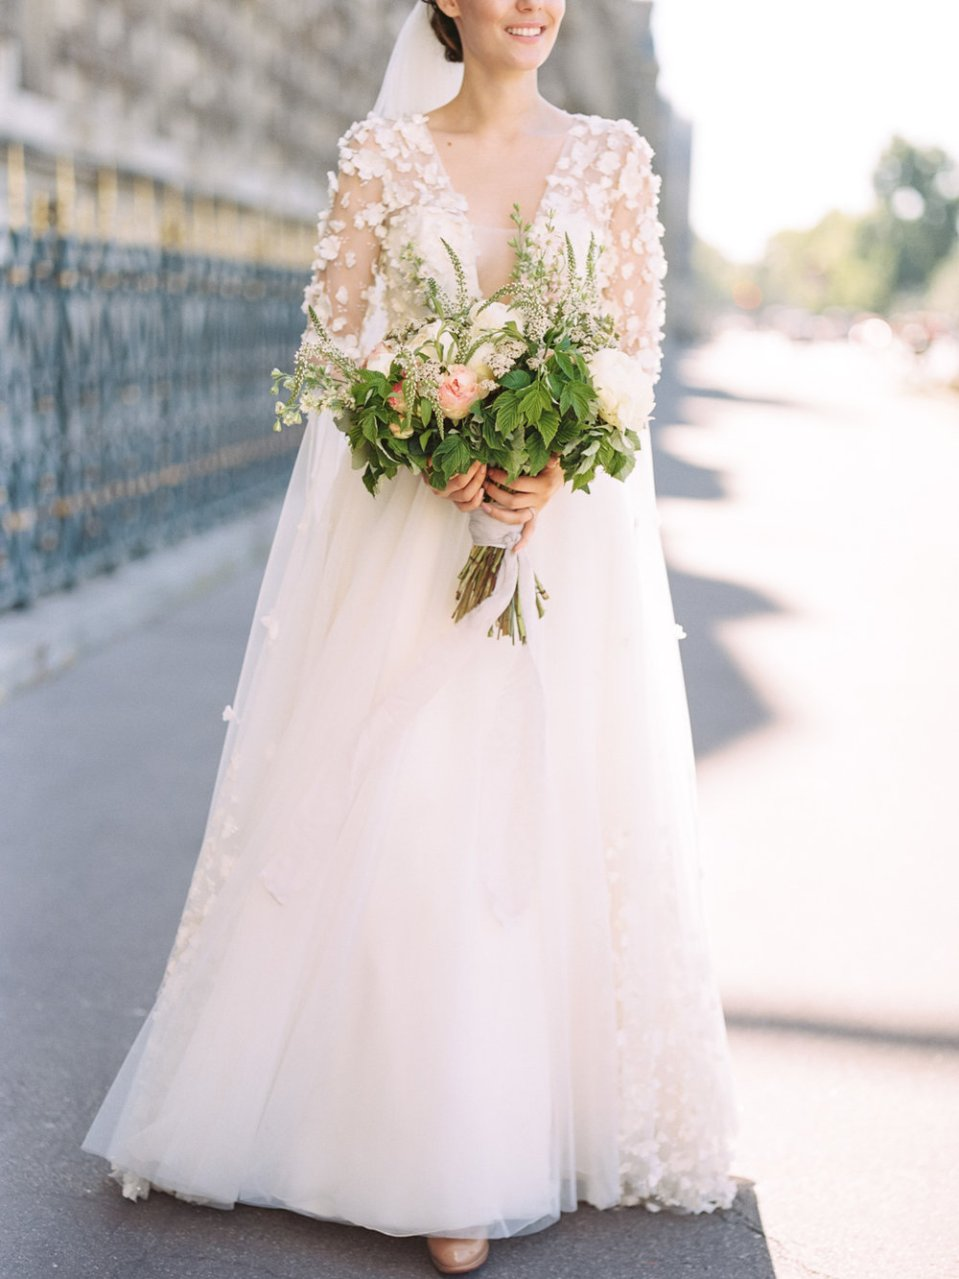 Destination Fine Art Wedding Editorial Photography in Paris with Max Chaoul -36.jpg